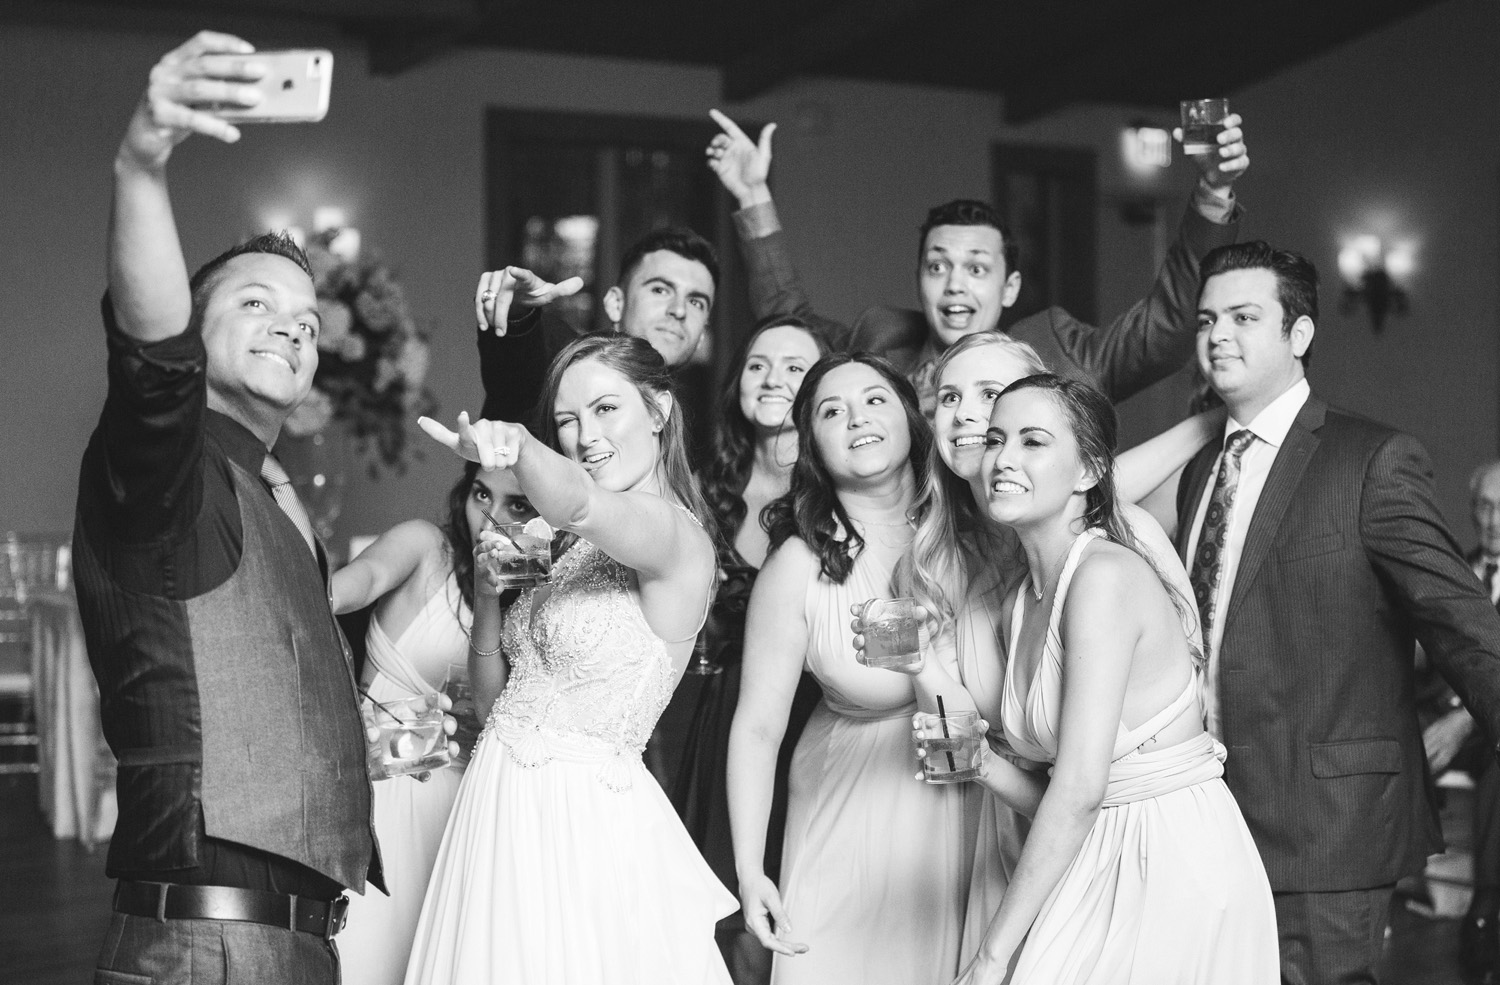 DFW wedding party reception by Monika Normand Photography